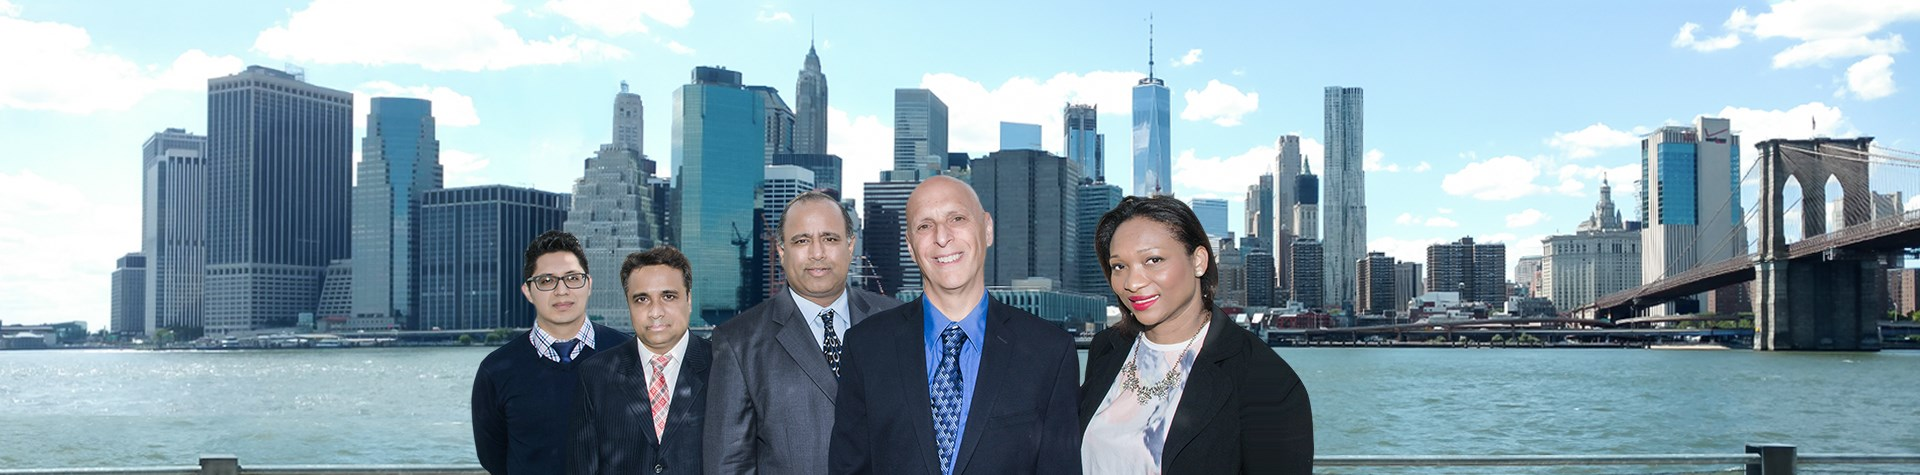 New York Bankruptcy Lawyer, NY Divorce Lawyer & NY Immigration Lawyer